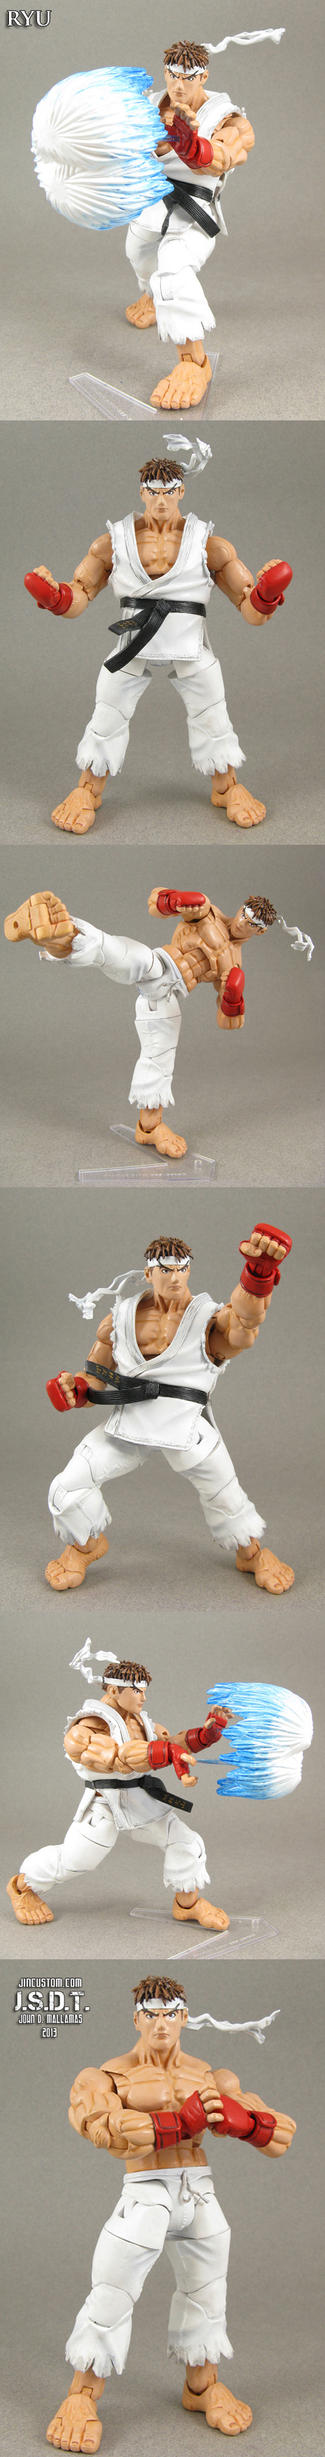 Street Fighter Alpha Ryu custom figure by Jin-Saotome